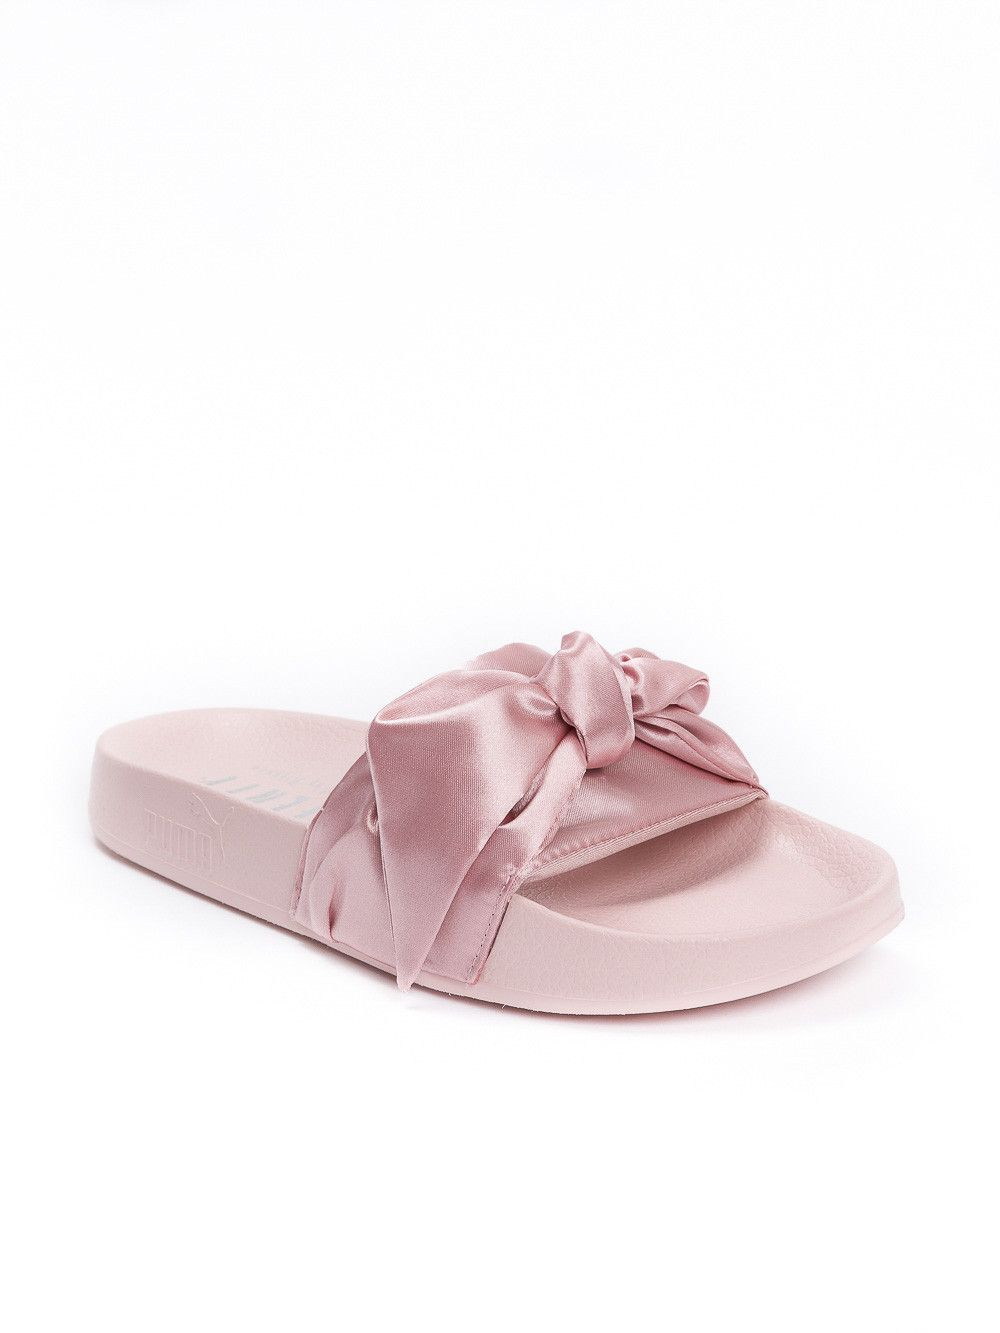 competitive price 91937 c1e93 Fenty X PUMA by Rihanna BOW SLIDE in 2019 | Julia's Dream ...